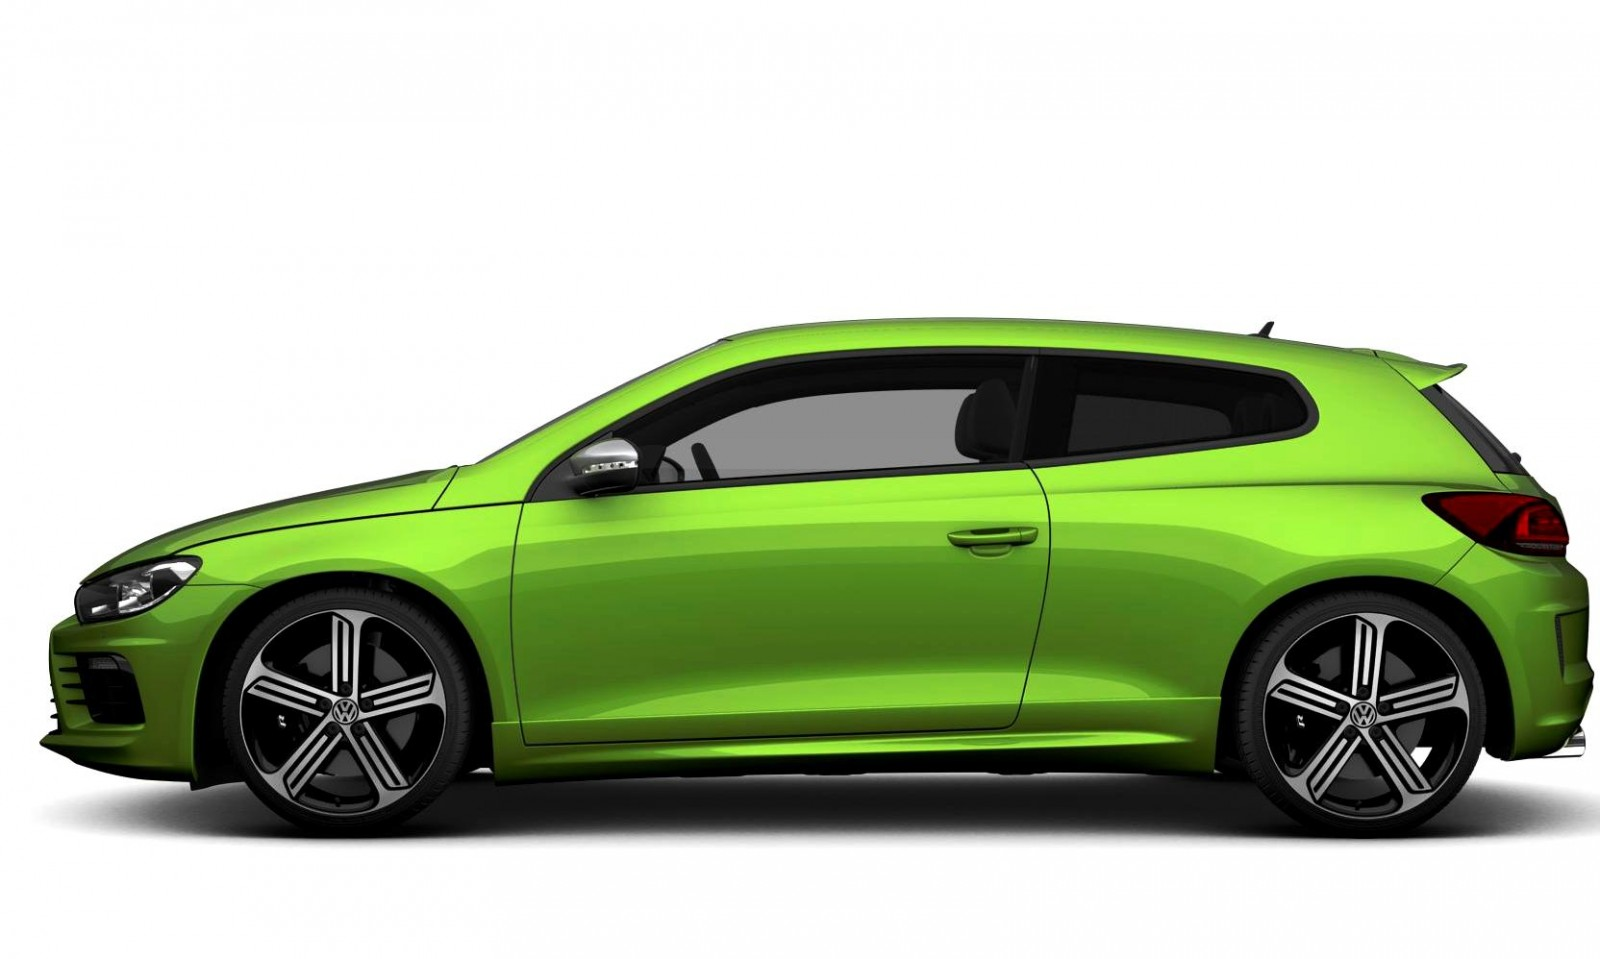 2015 vw scirocco uk 1